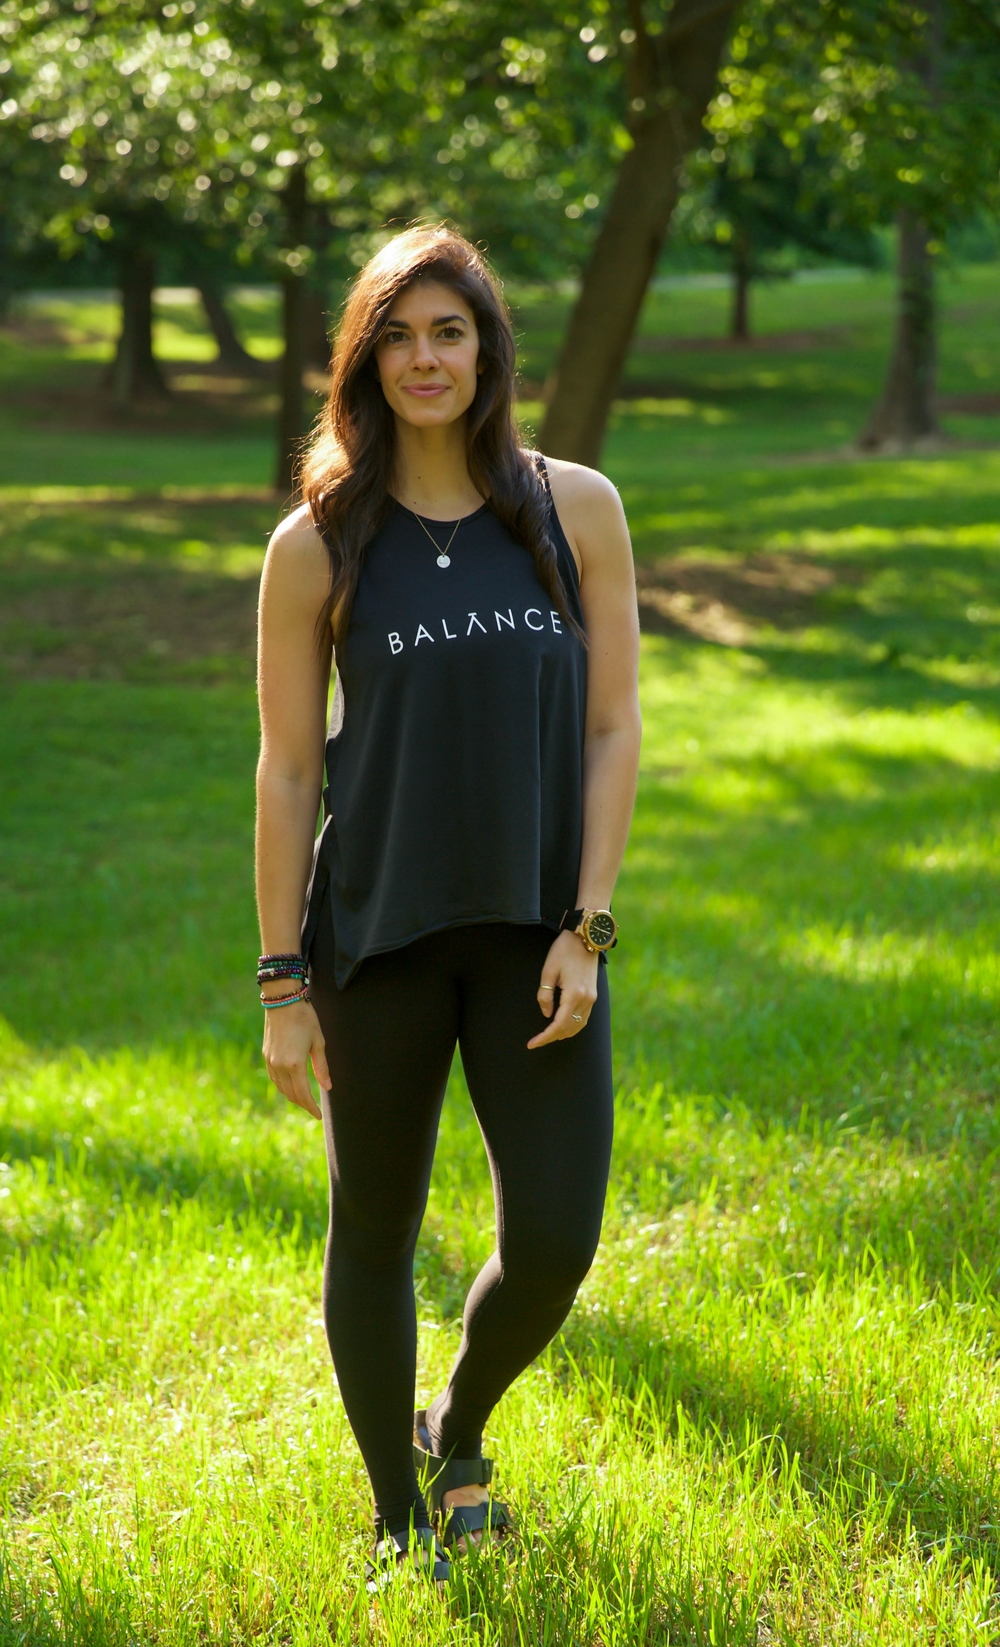 This Balance Tank From Peace Love World Has Been A Favorite Of Mine To Throw On Go For The Last Few Weeks As You Can See By The Two Pics Above